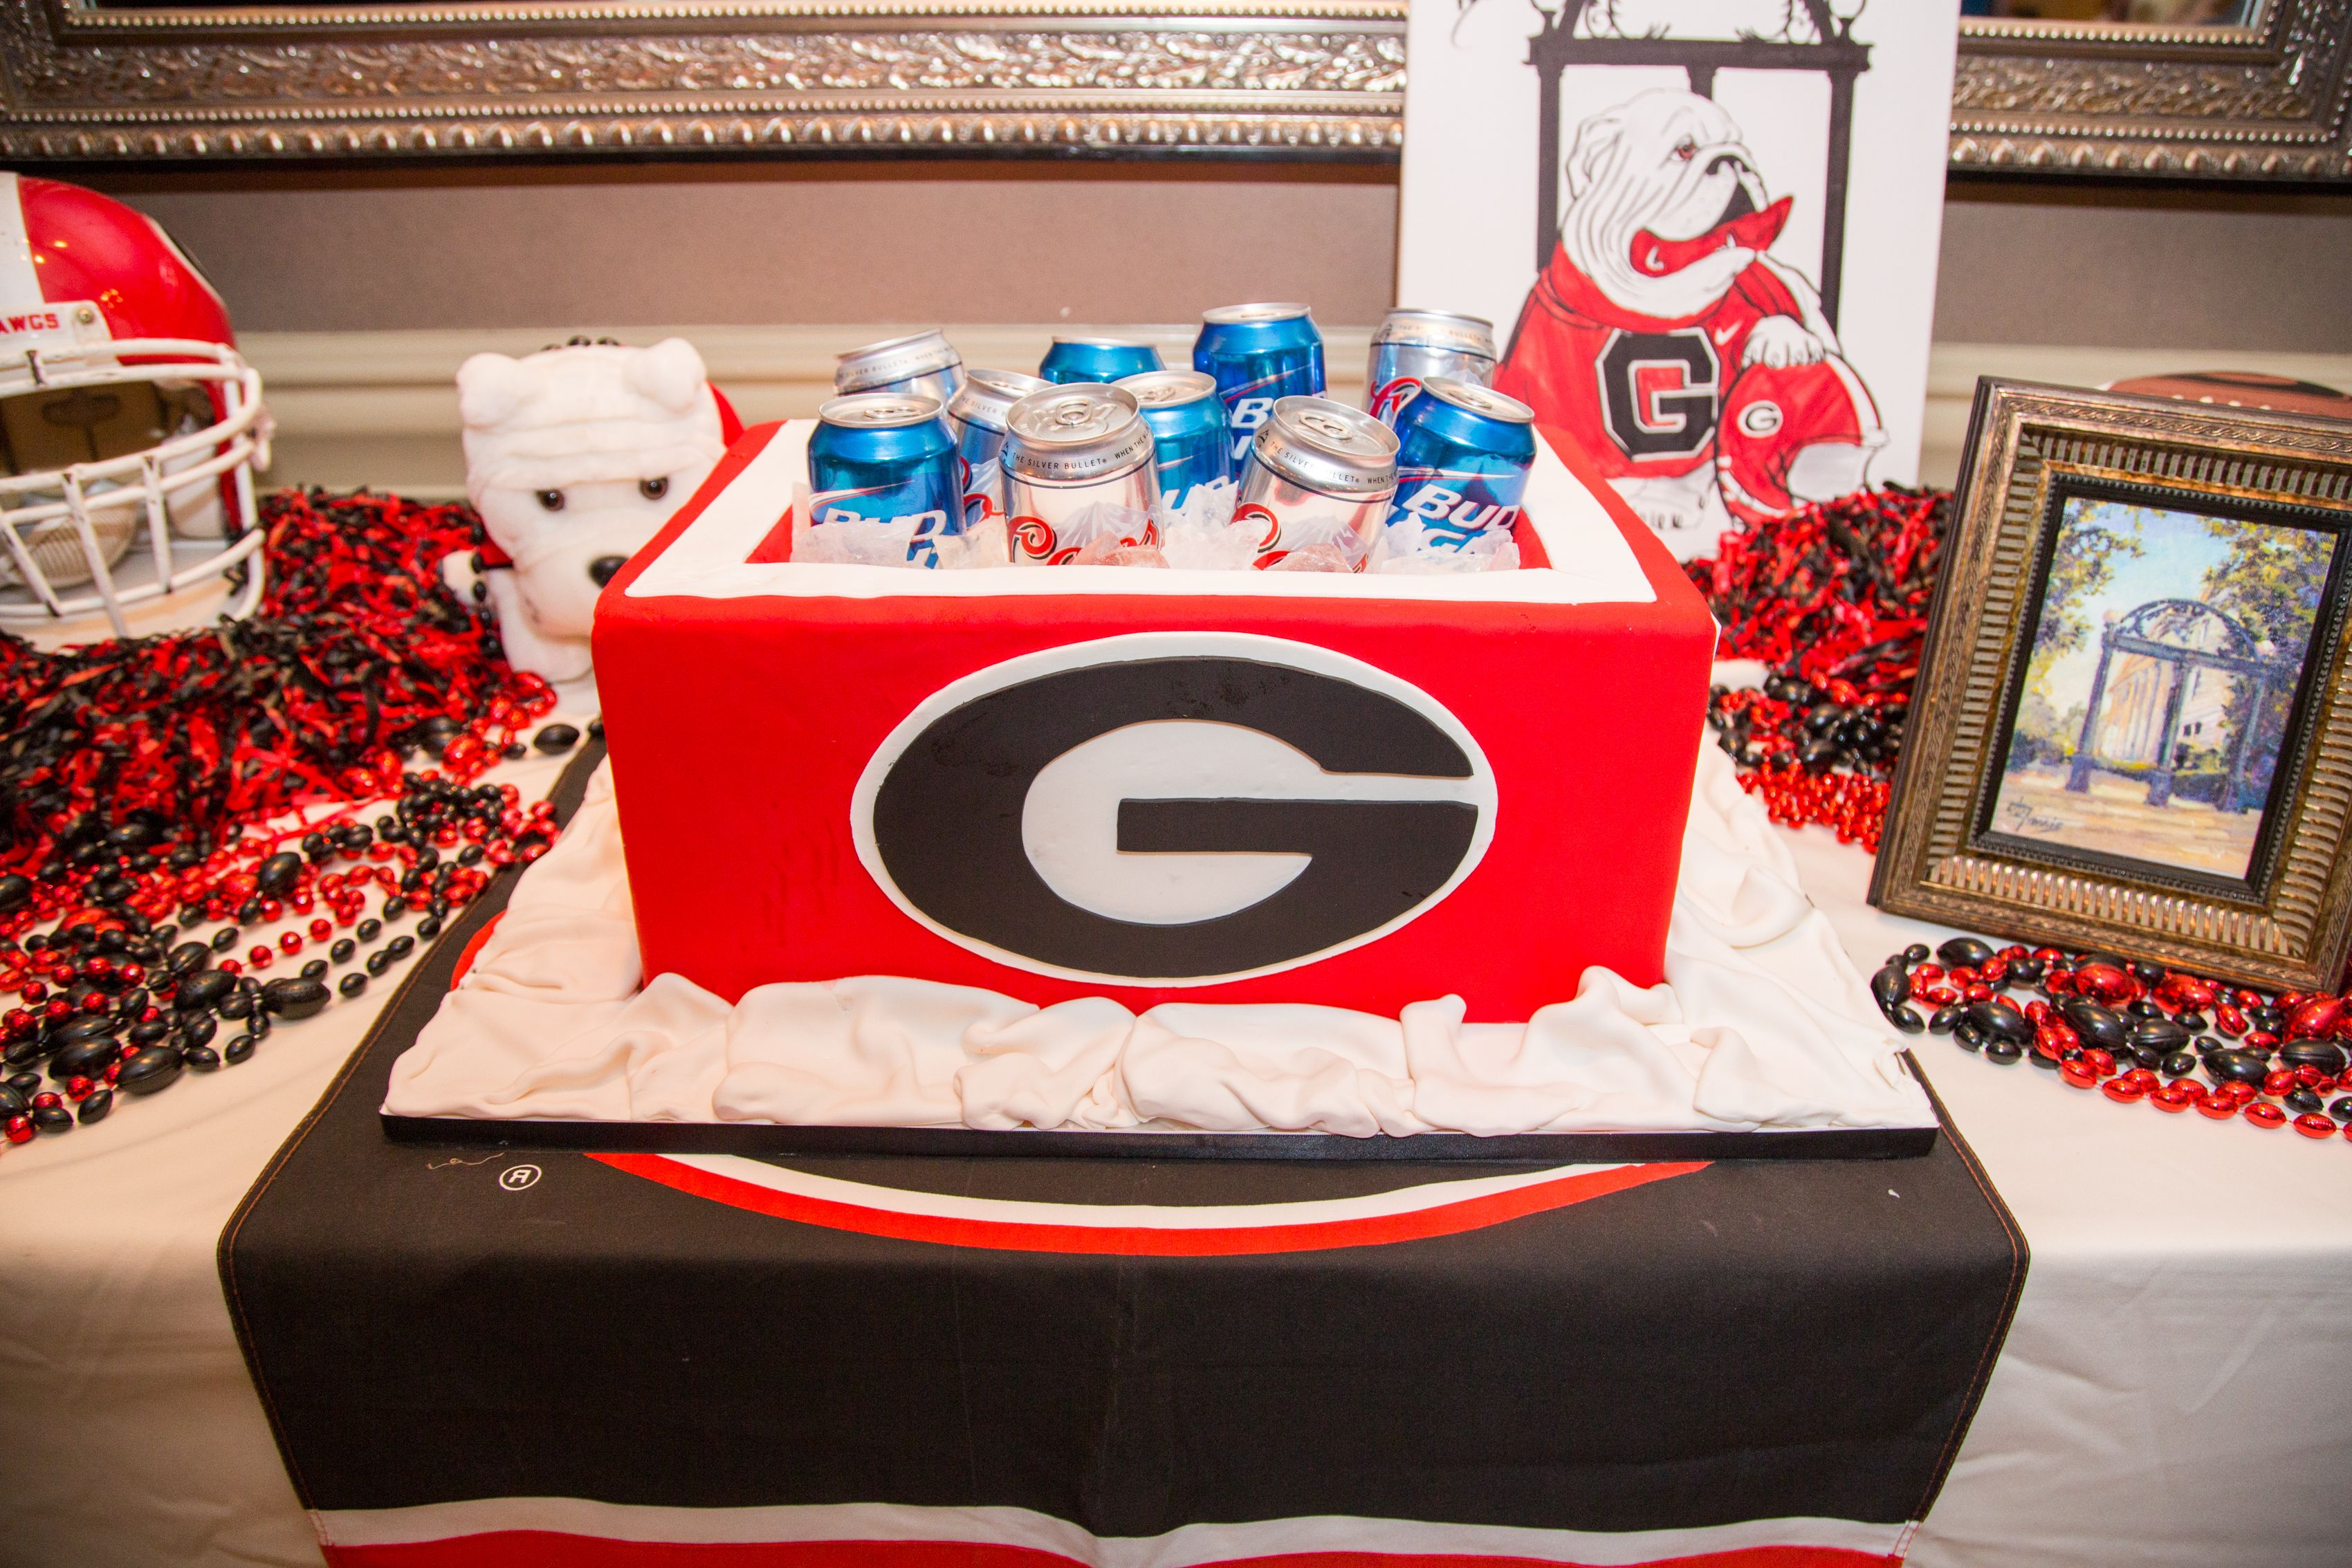 Go bulldogs beer cooler grooms cake honoring the